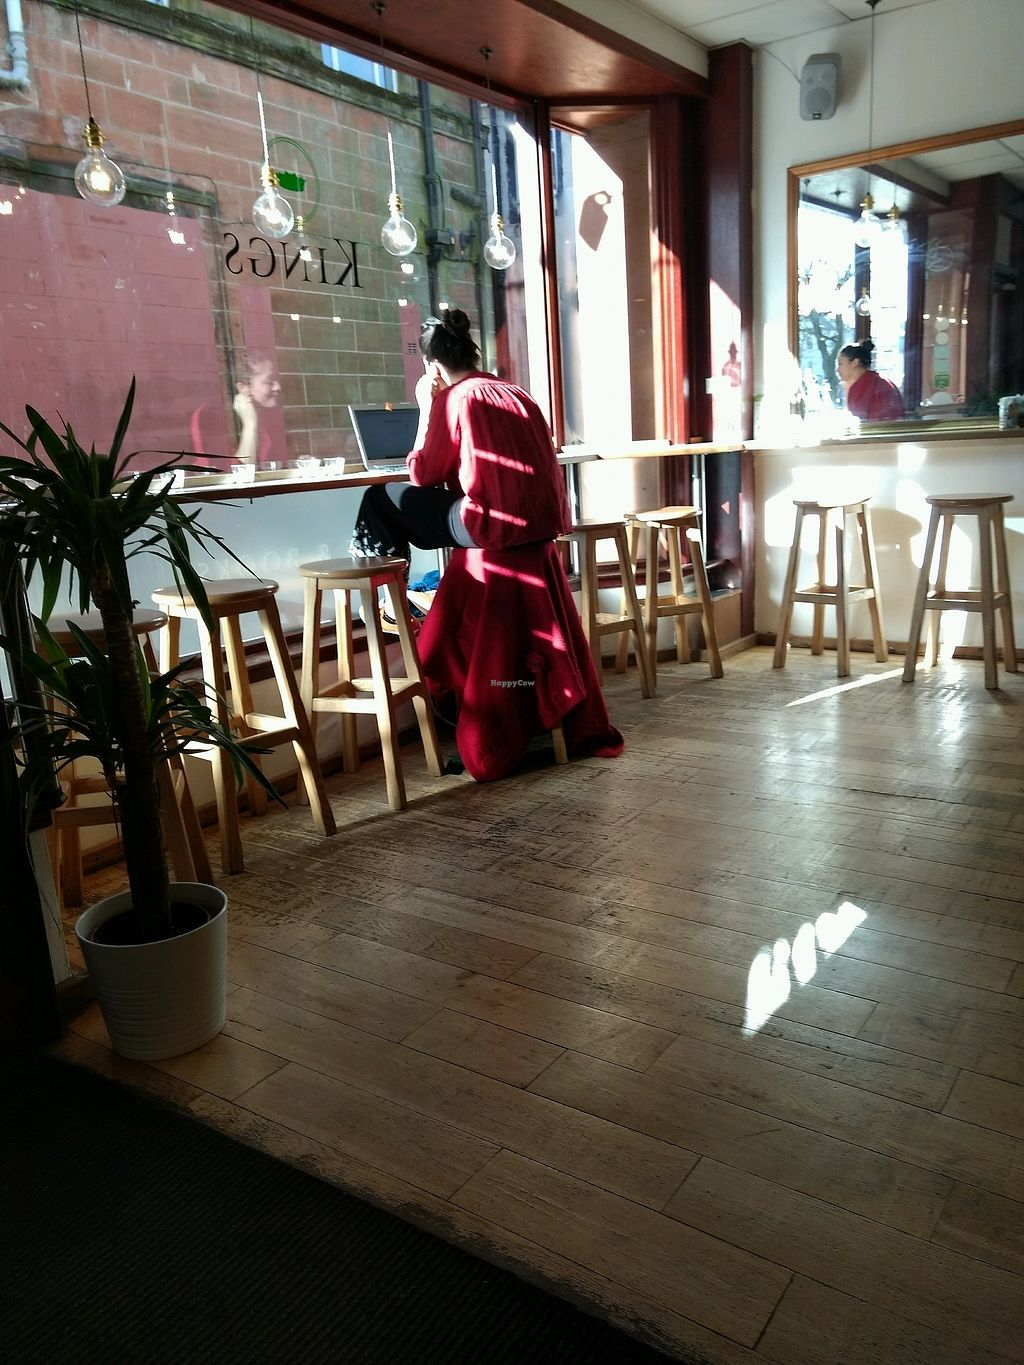 """Photo of Kings Coffee and Books  by <a href=""""/members/profile/craigmc"""">craigmc</a> <br/>light <br/> February 9, 2018  - <a href='/contact/abuse/image/101807/356764'>Report</a>"""